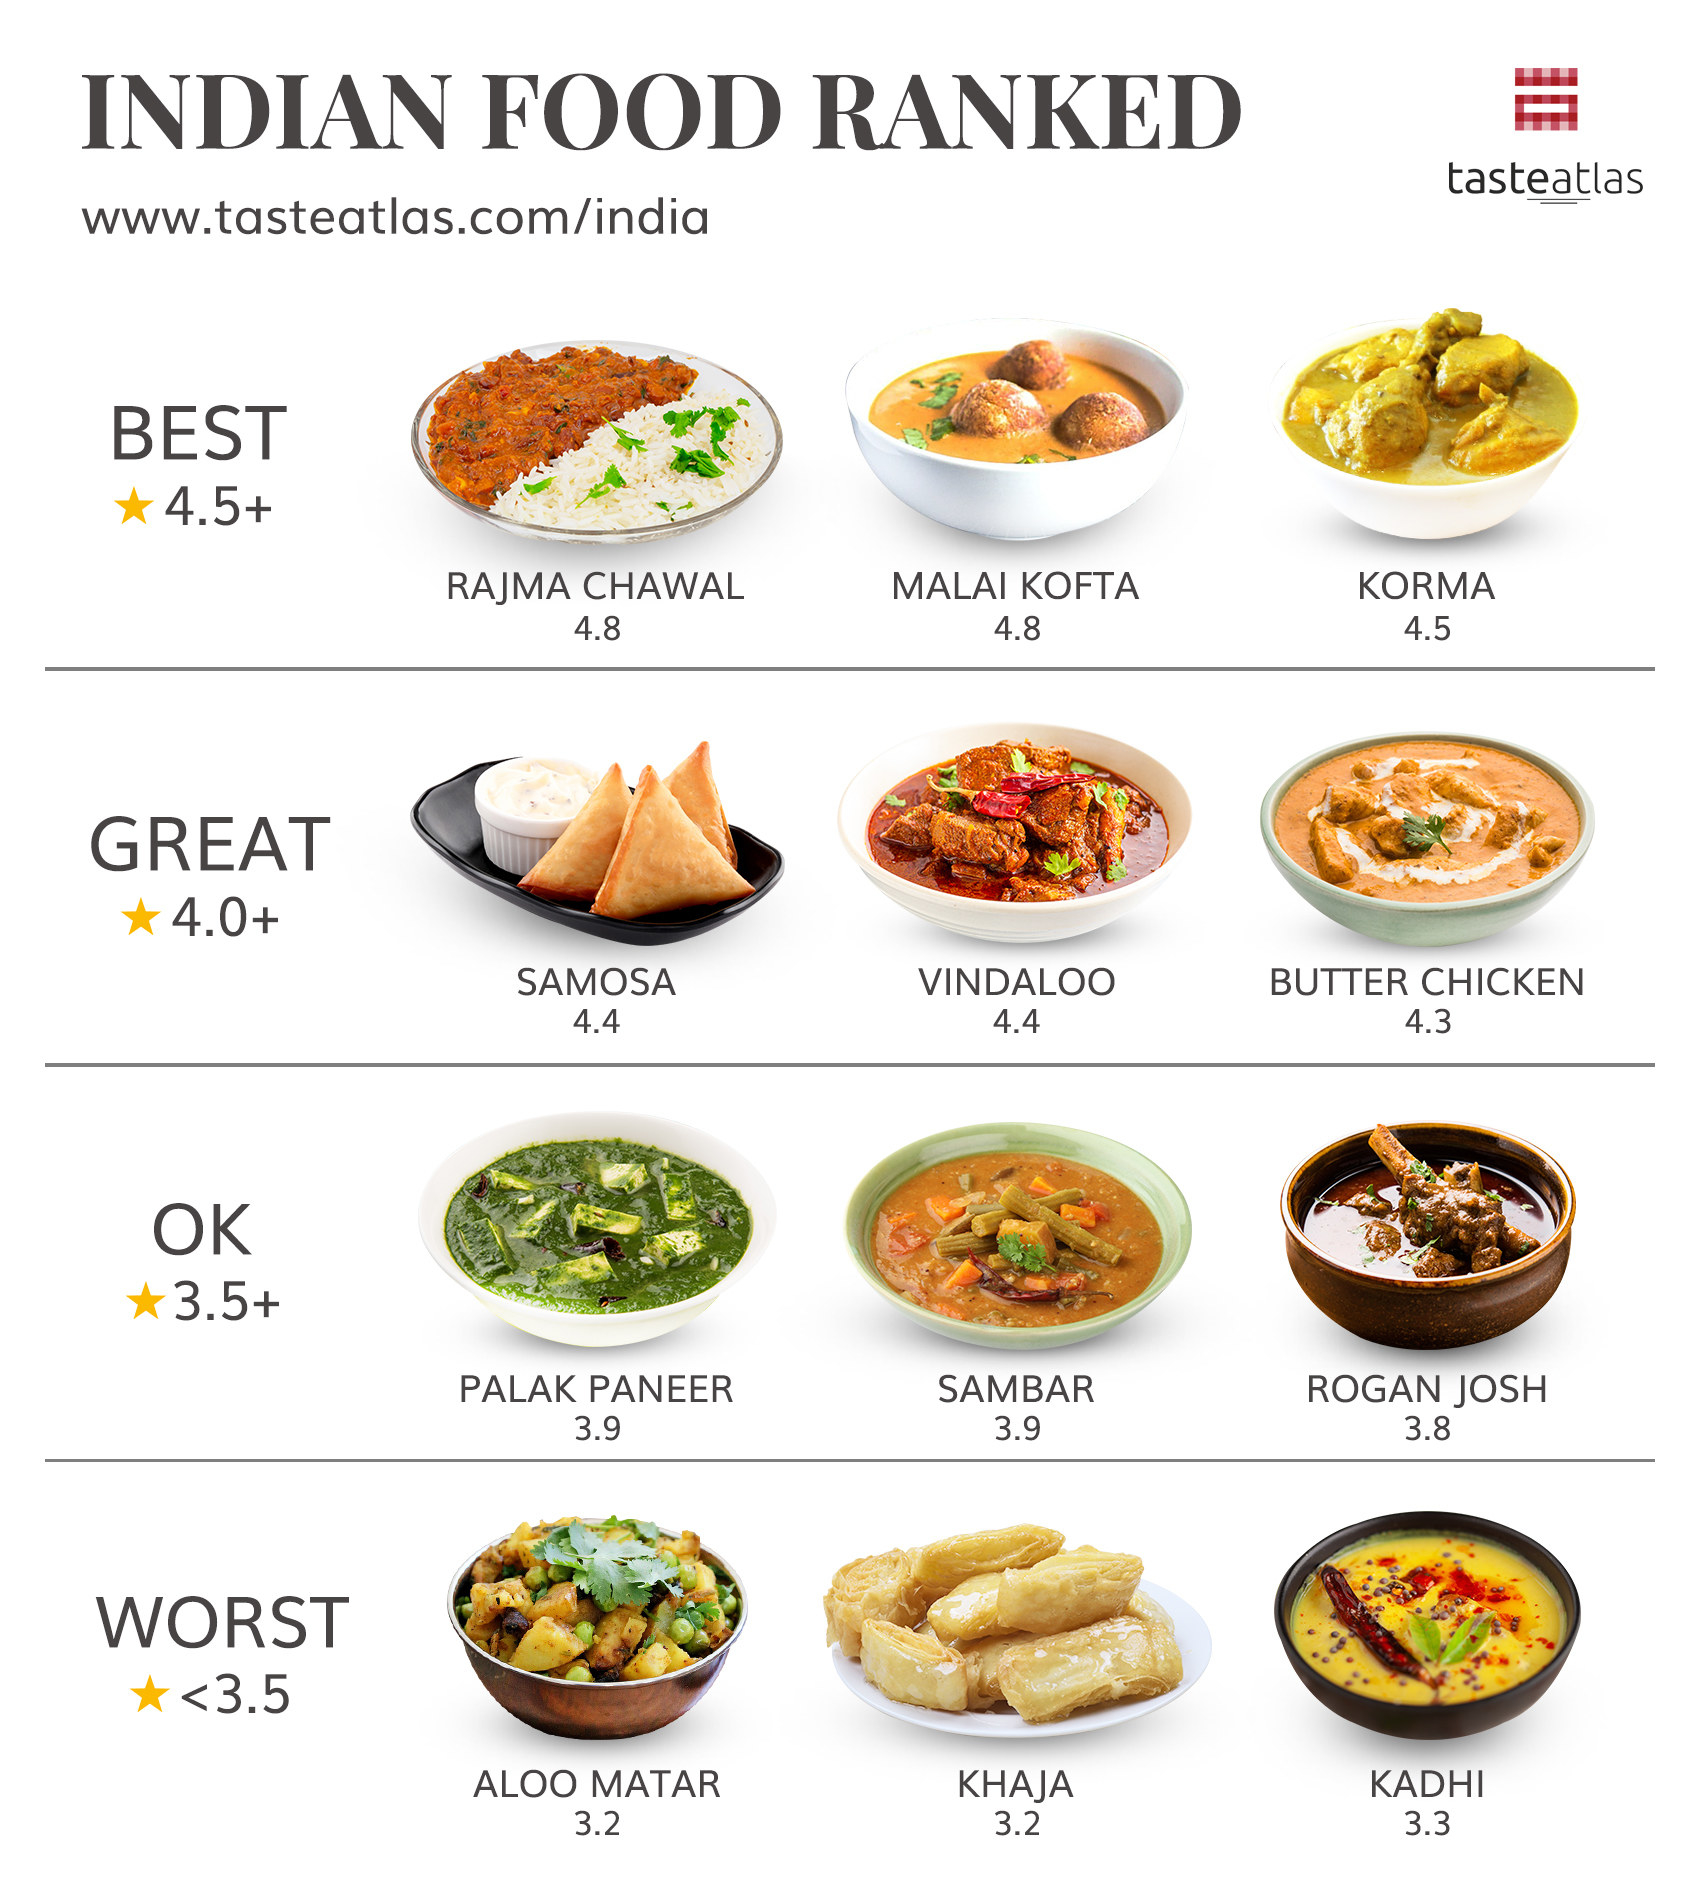 Graphic showing rajma chawal ranked best